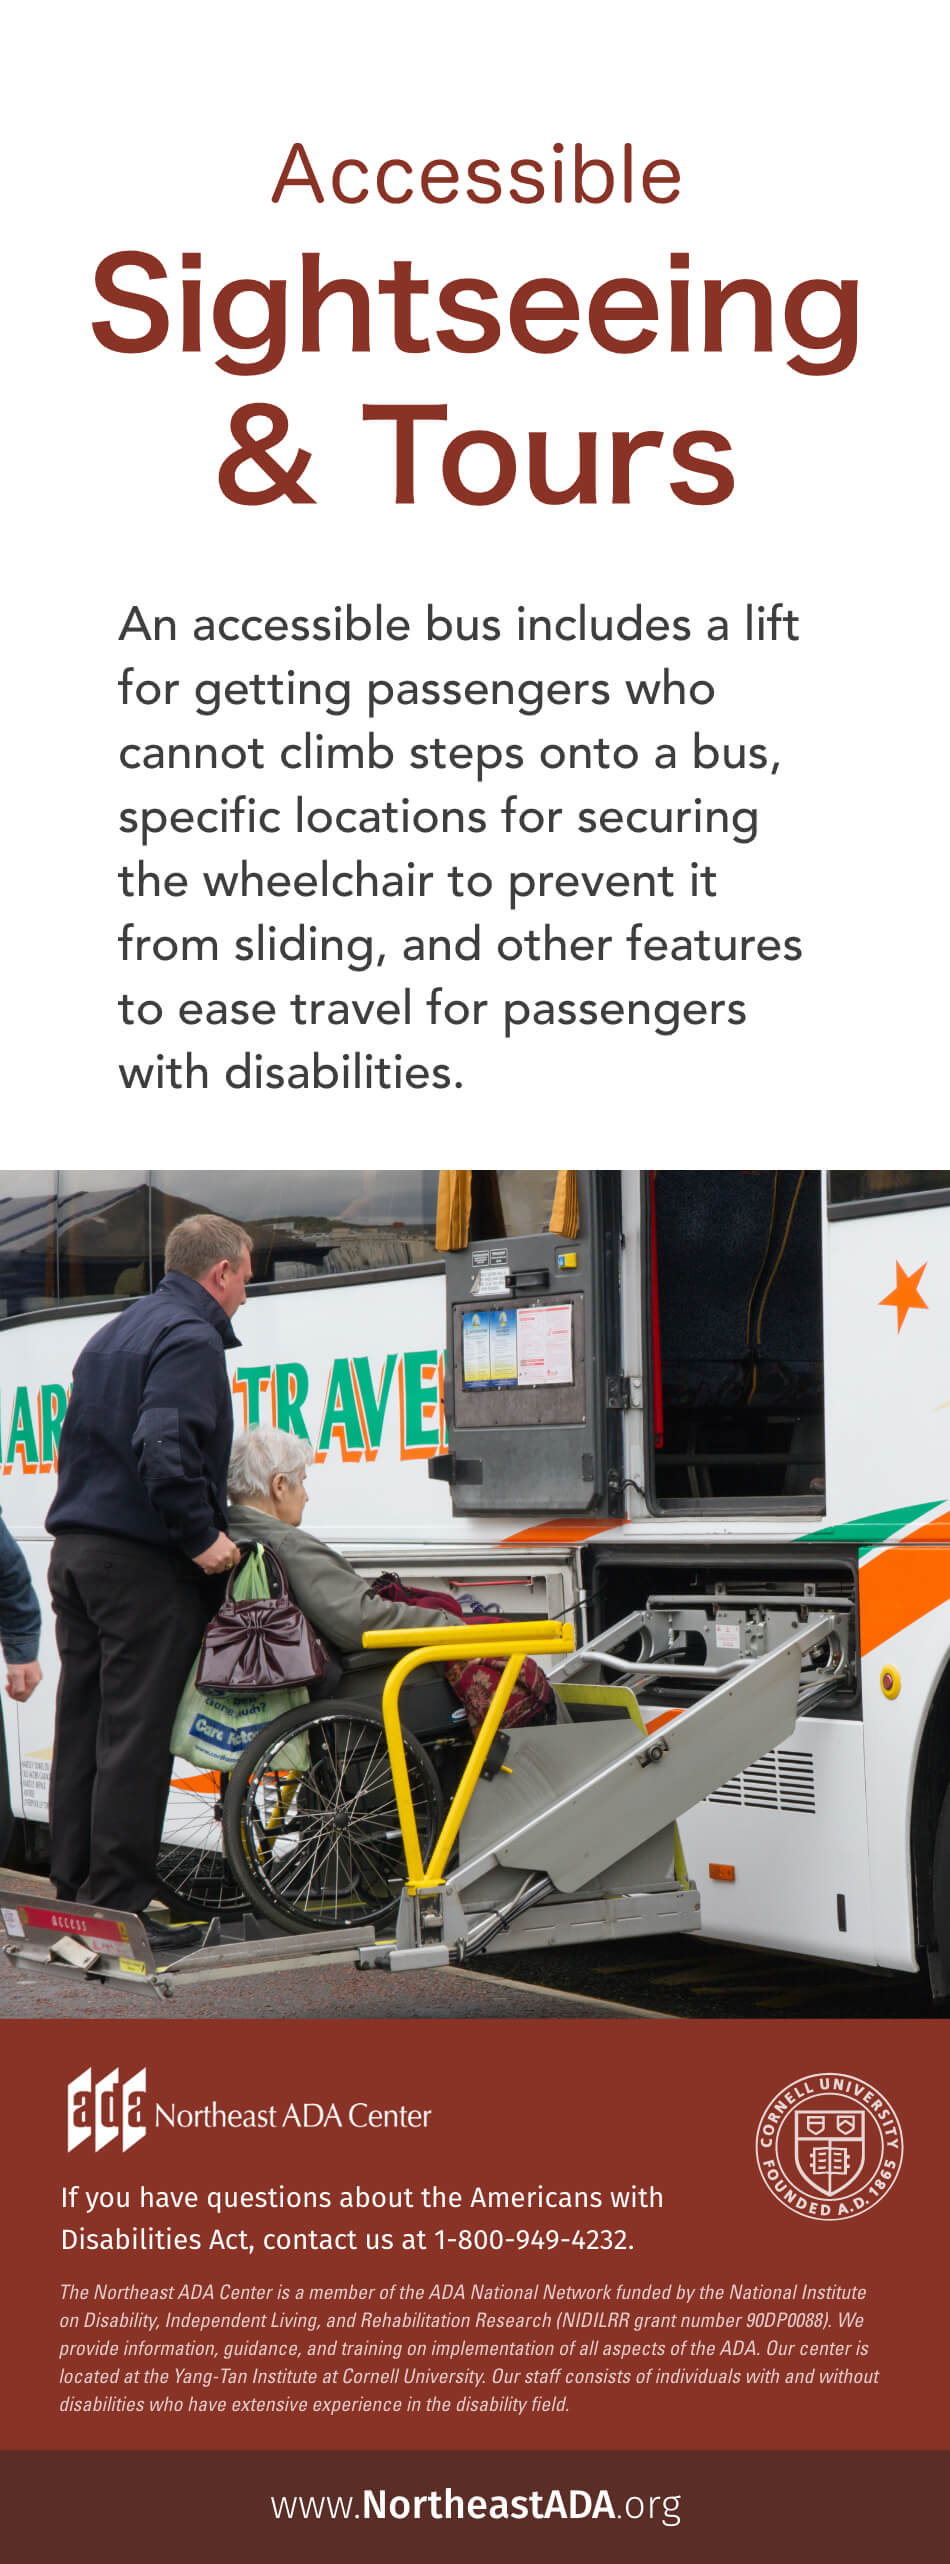 Infographic titled 'Accessible Sightseeing & Tours':